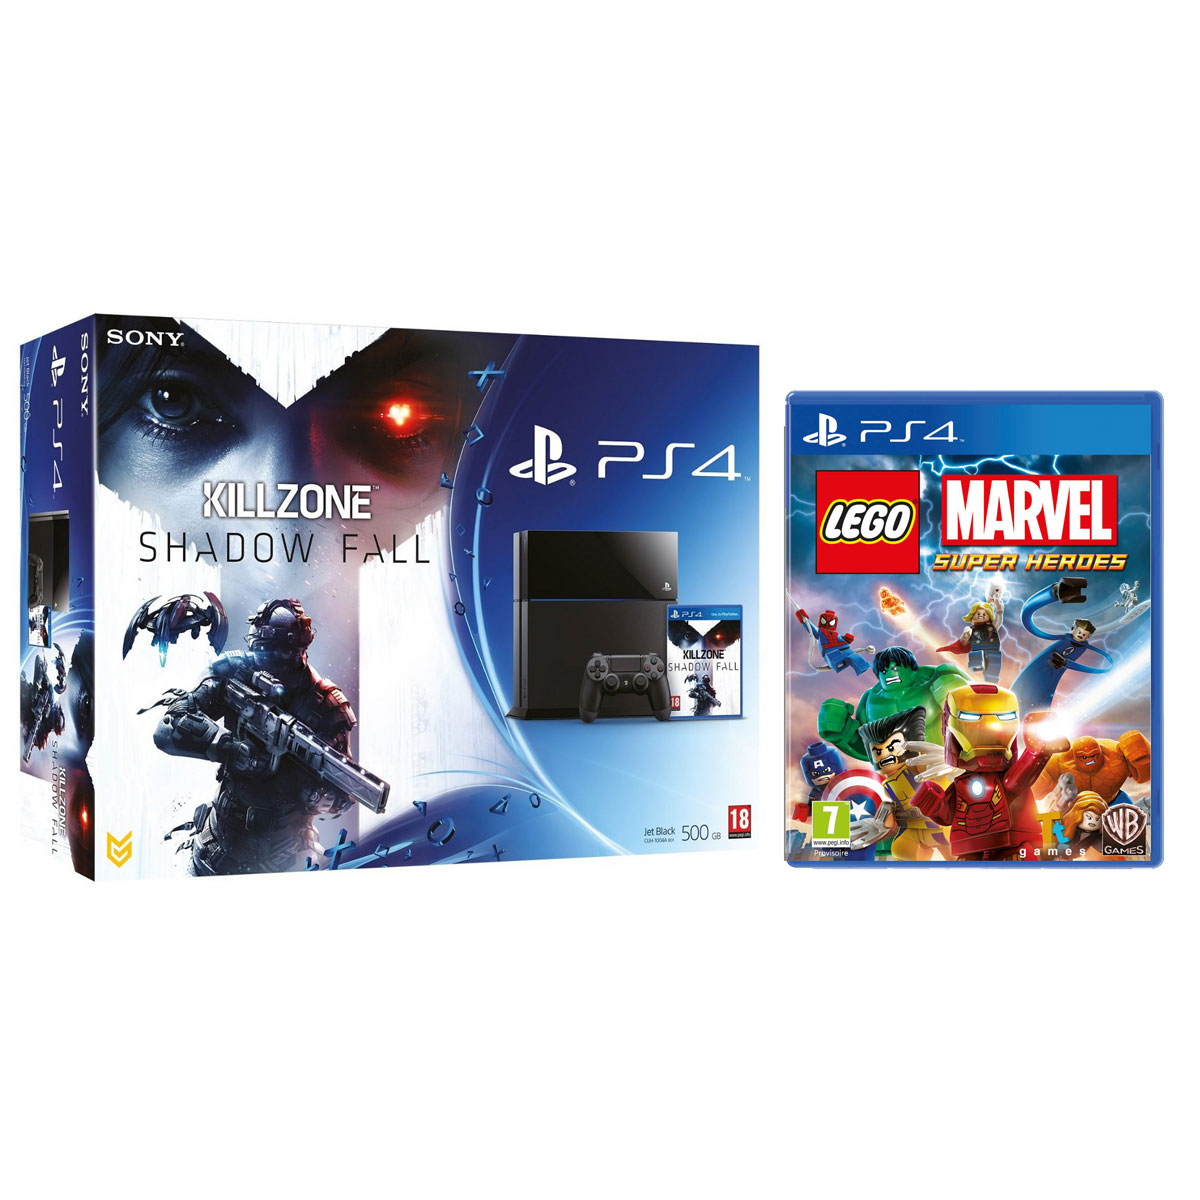 sony playstation 4 killzone shadow fall lego marvel. Black Bedroom Furniture Sets. Home Design Ideas